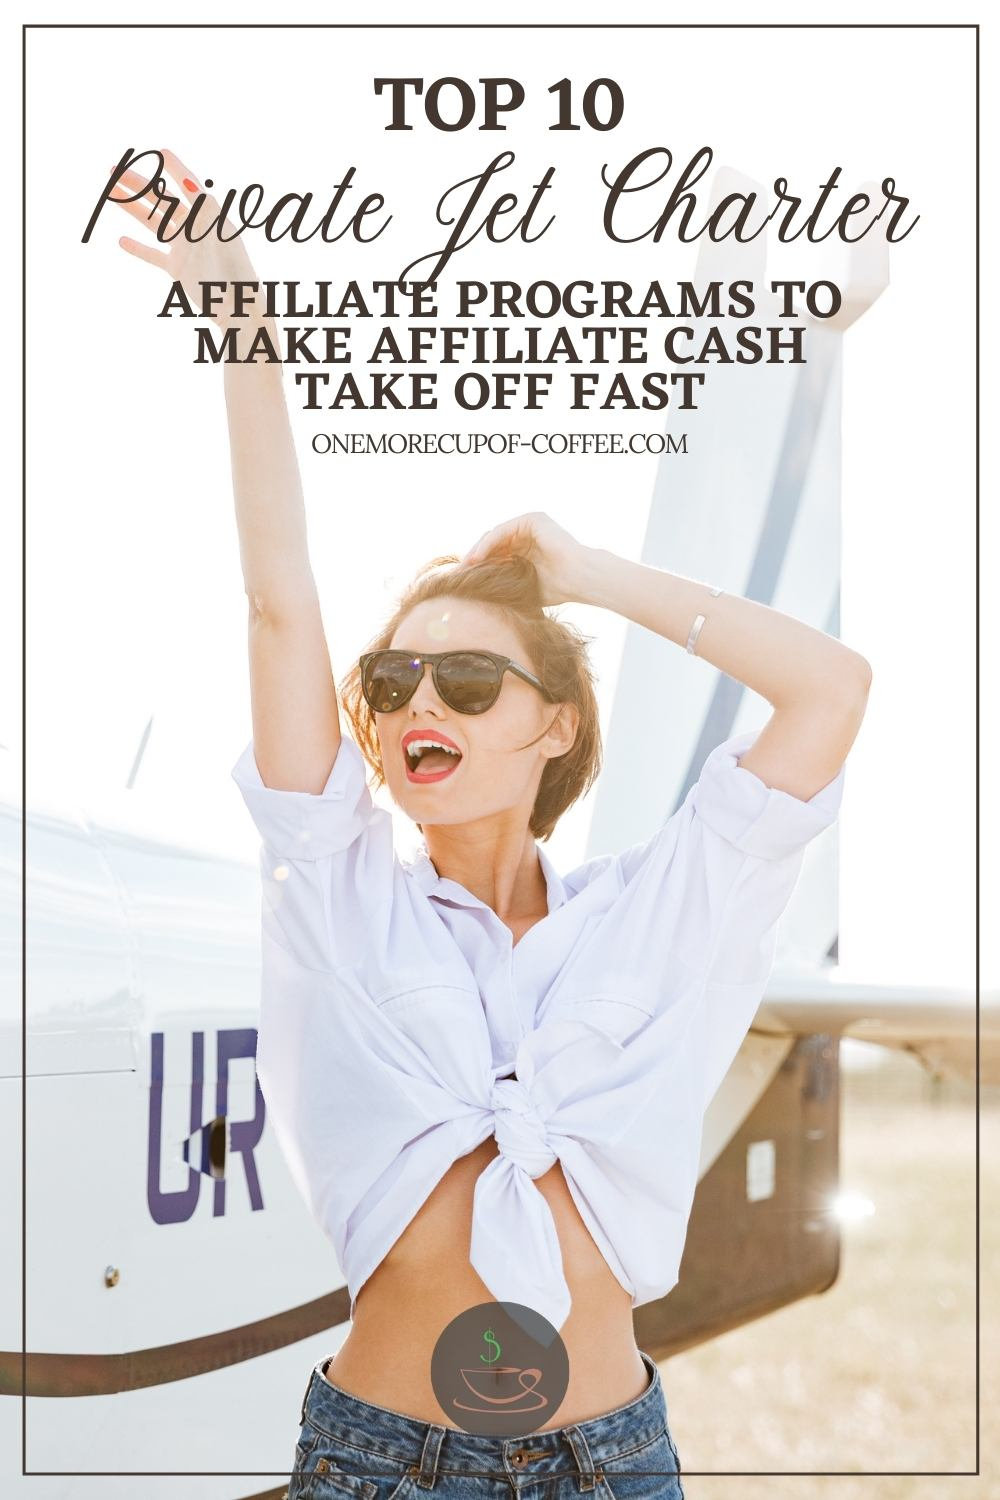 """smiling woman wearing sunglasses, white top and denim bottom posing in front of a private jet, with text overlay """"Top 10 Private Jet Charter Affiliate Programs To Make Affiliate Cash Take Off Fast"""""""